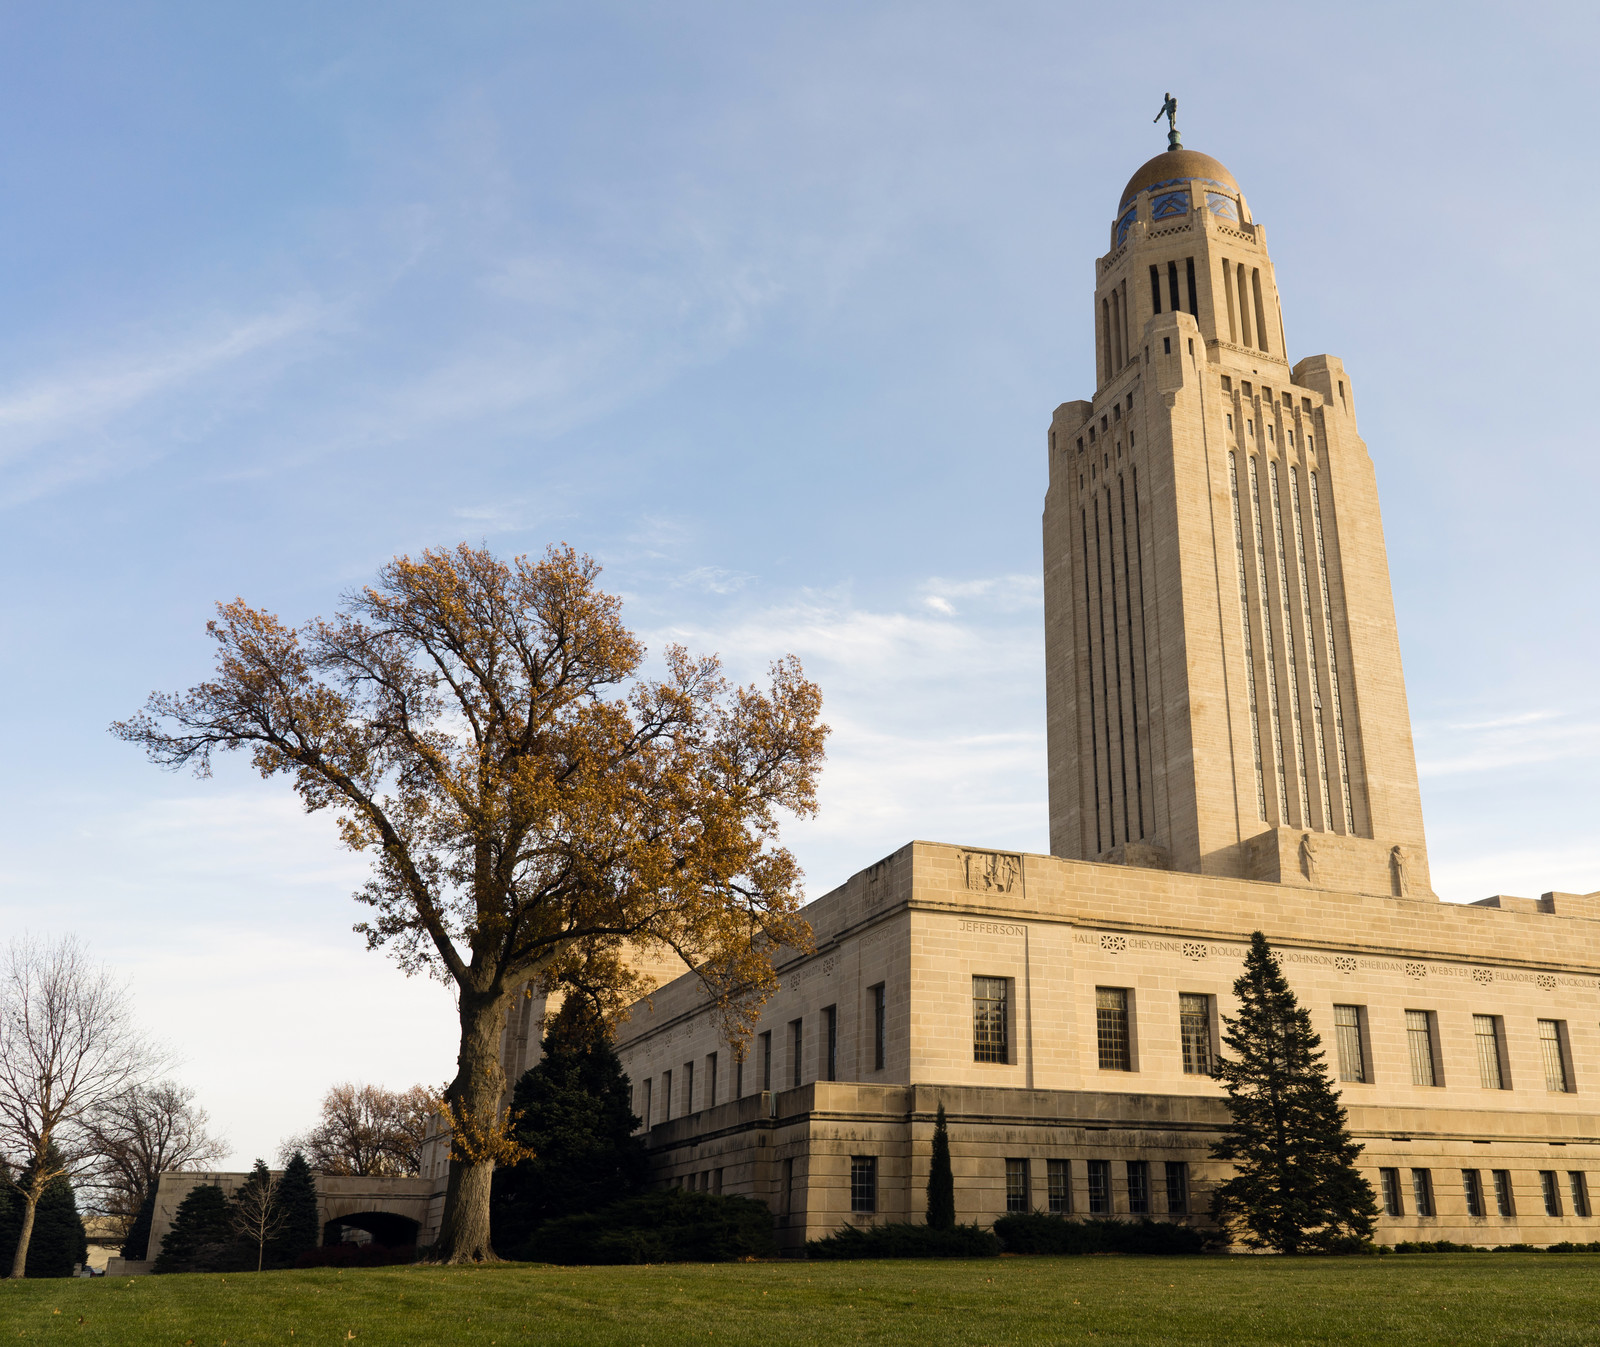 Lincoln Nebraska Capital Building with a dome on top. A few trees on the grounds, green grass and blue skies frame the building